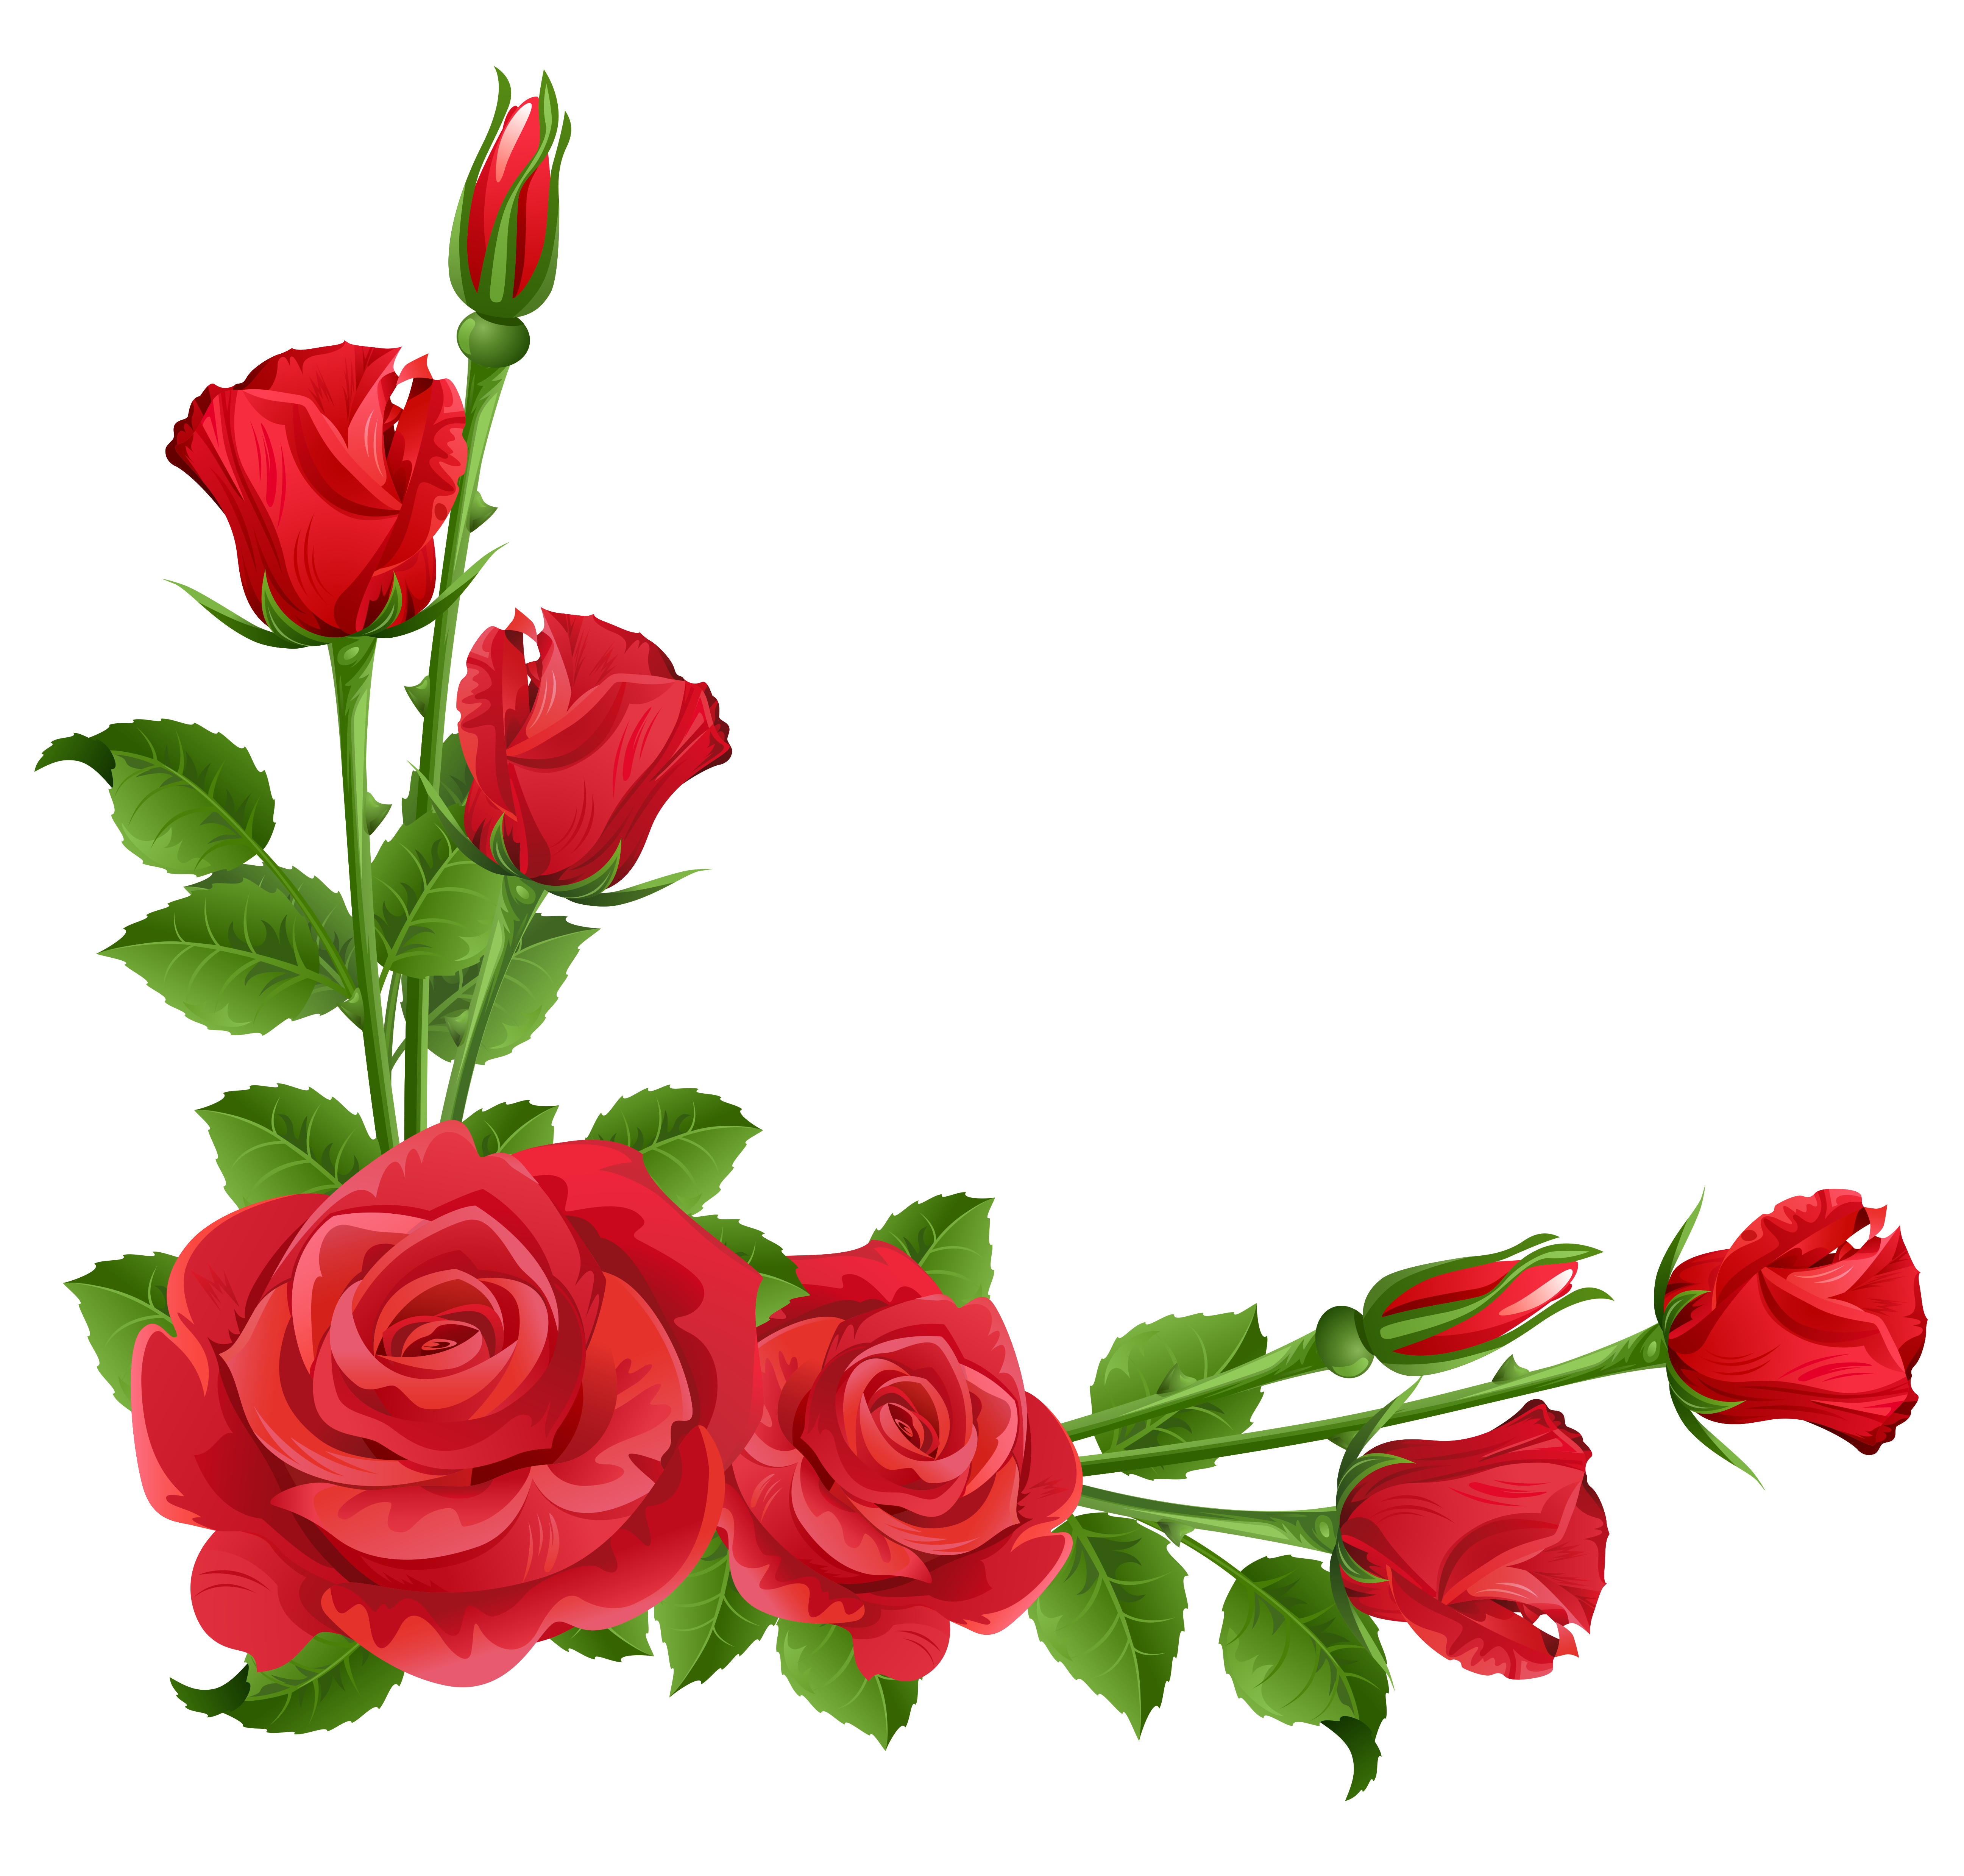 Rose flower border clipart png royalty free library Rose Clipart Transparent Background | Free download best ... png royalty free library